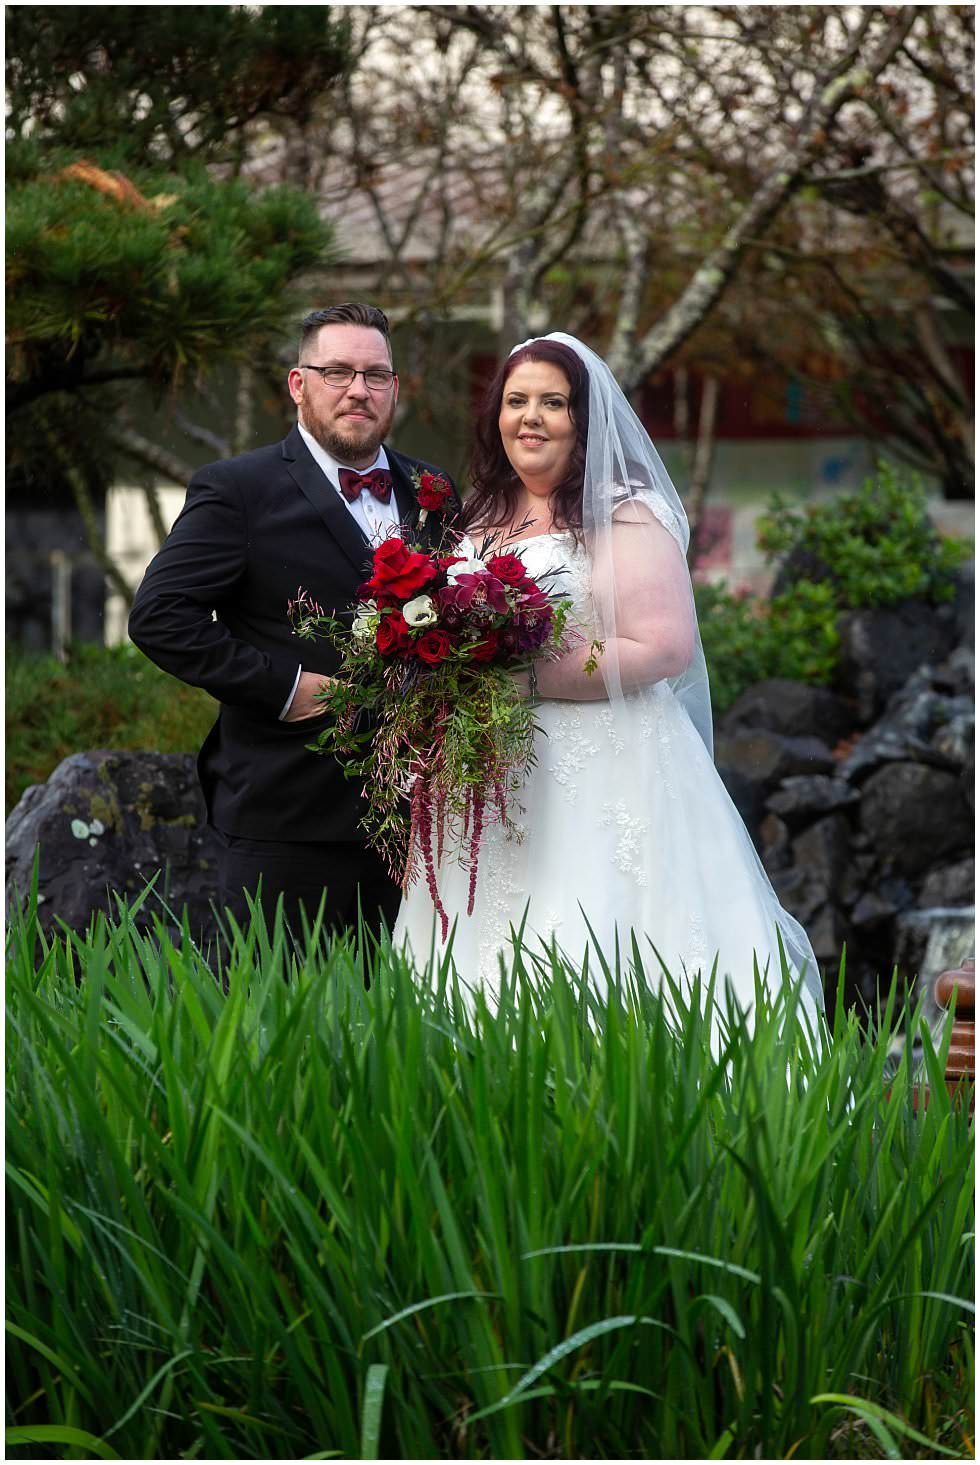 ArtyJ Photography | Kim Oakhill, Edogawa Commemorative Garden, Central Coast, Spring Wedding, Wedding, NSW, Photography | Toni & Russell | Wedding